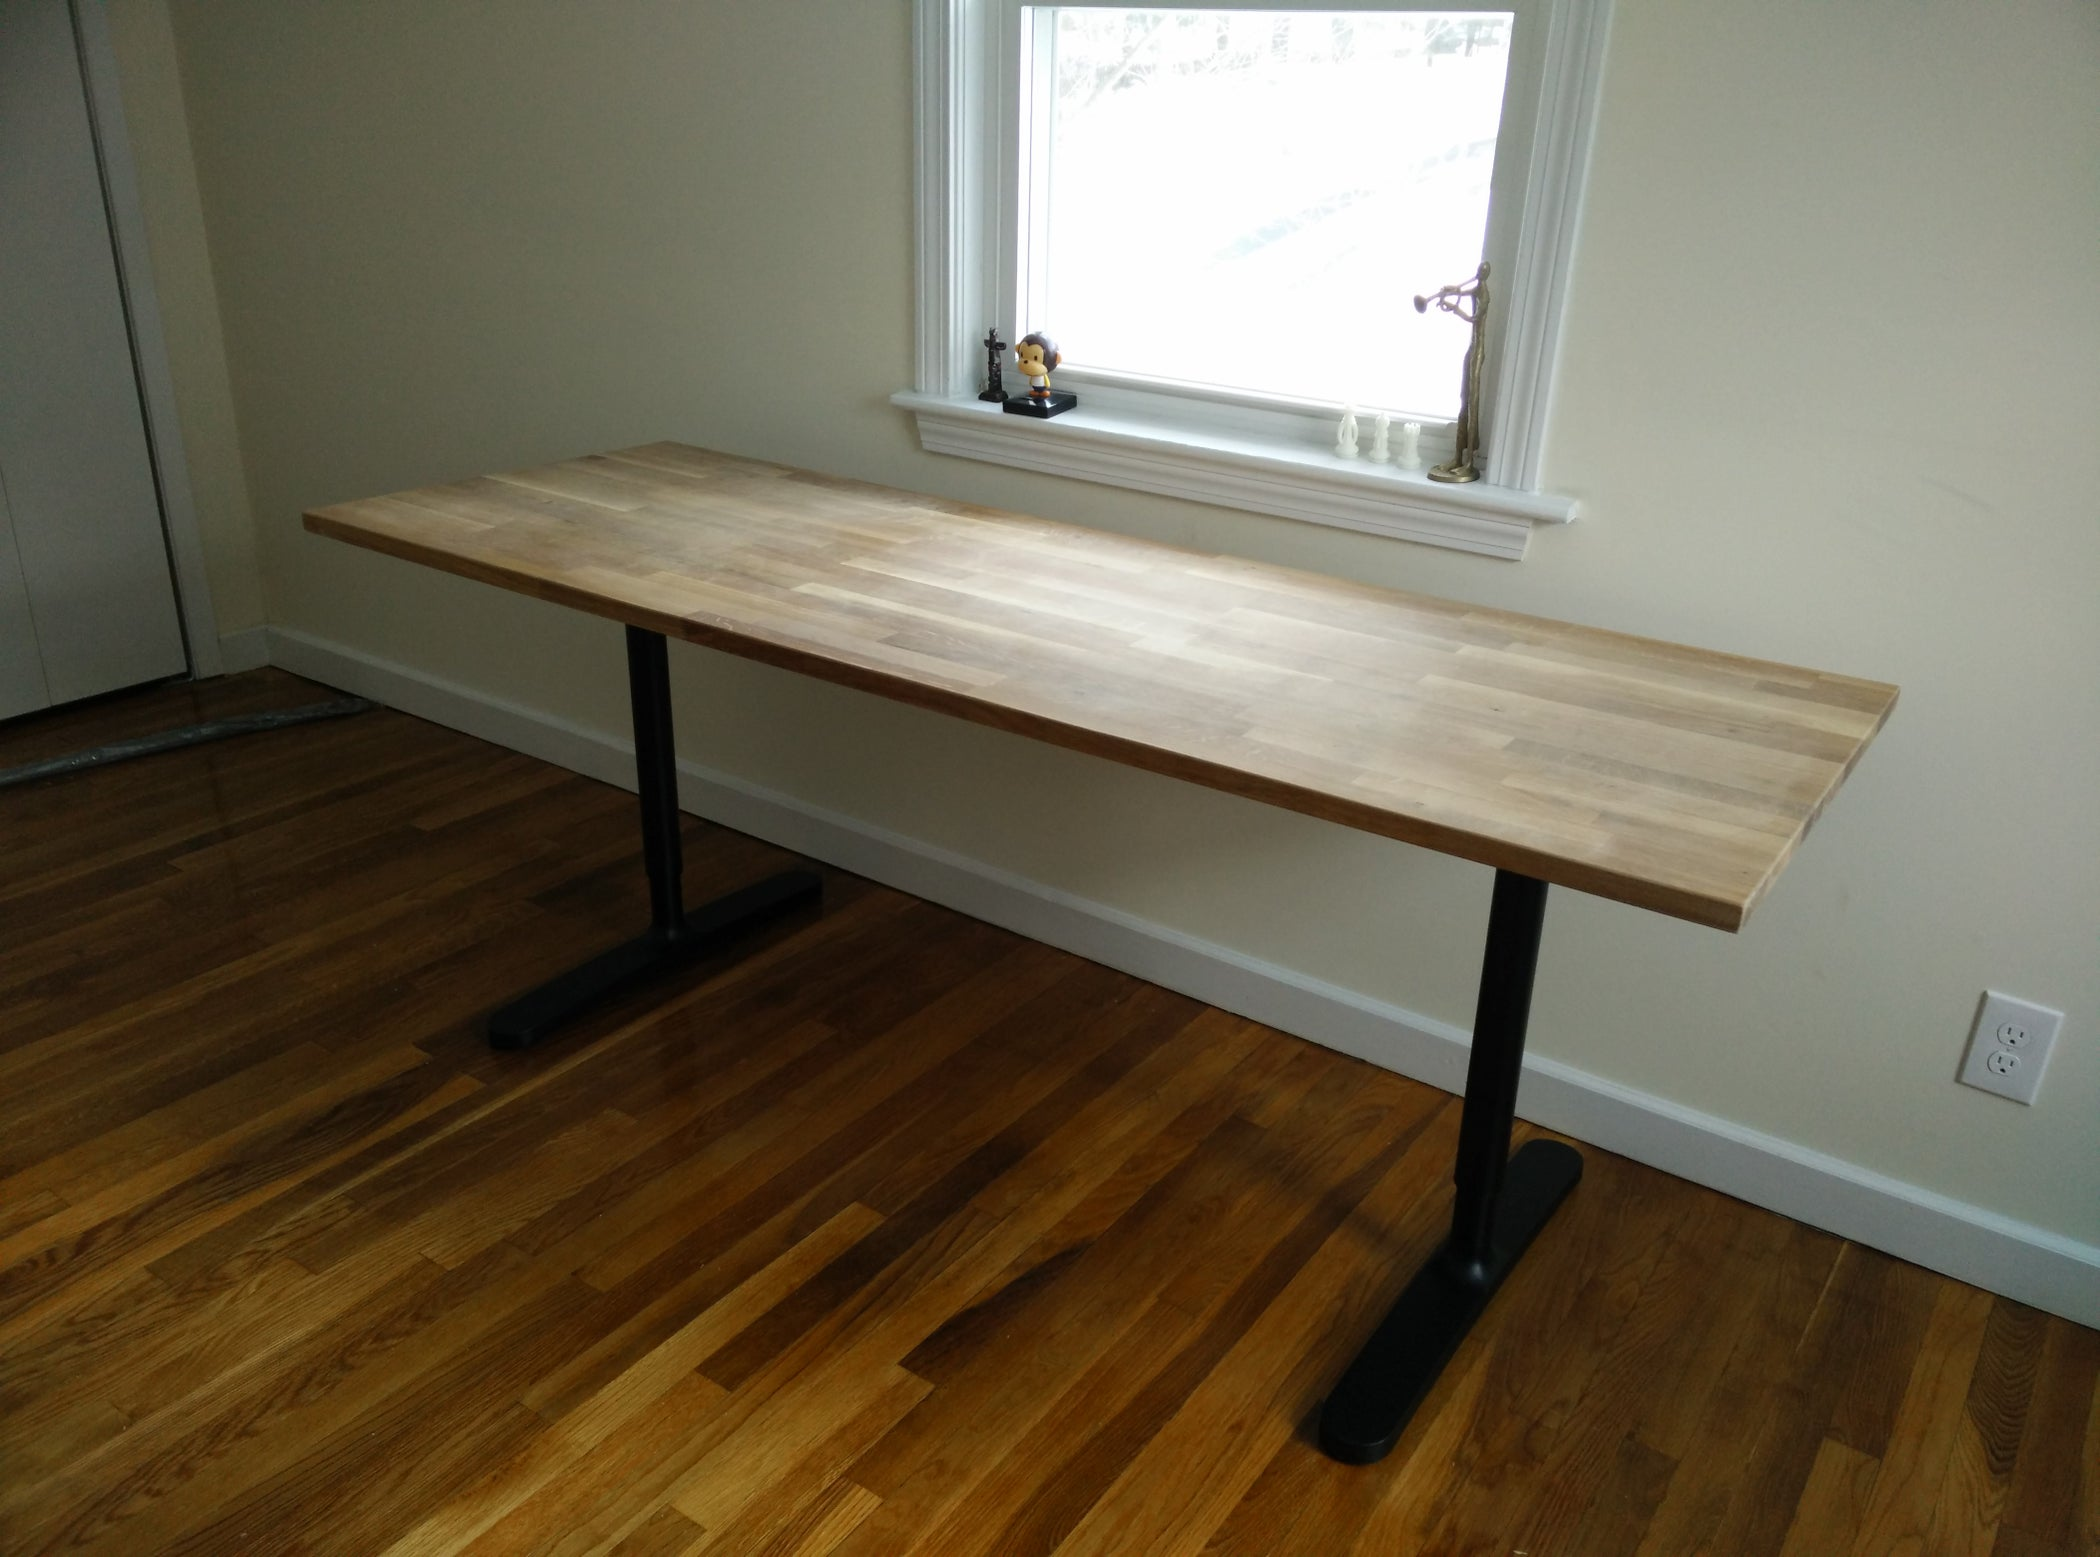 Butcher Block Countertop Table Ikea Hack 4 Steps With